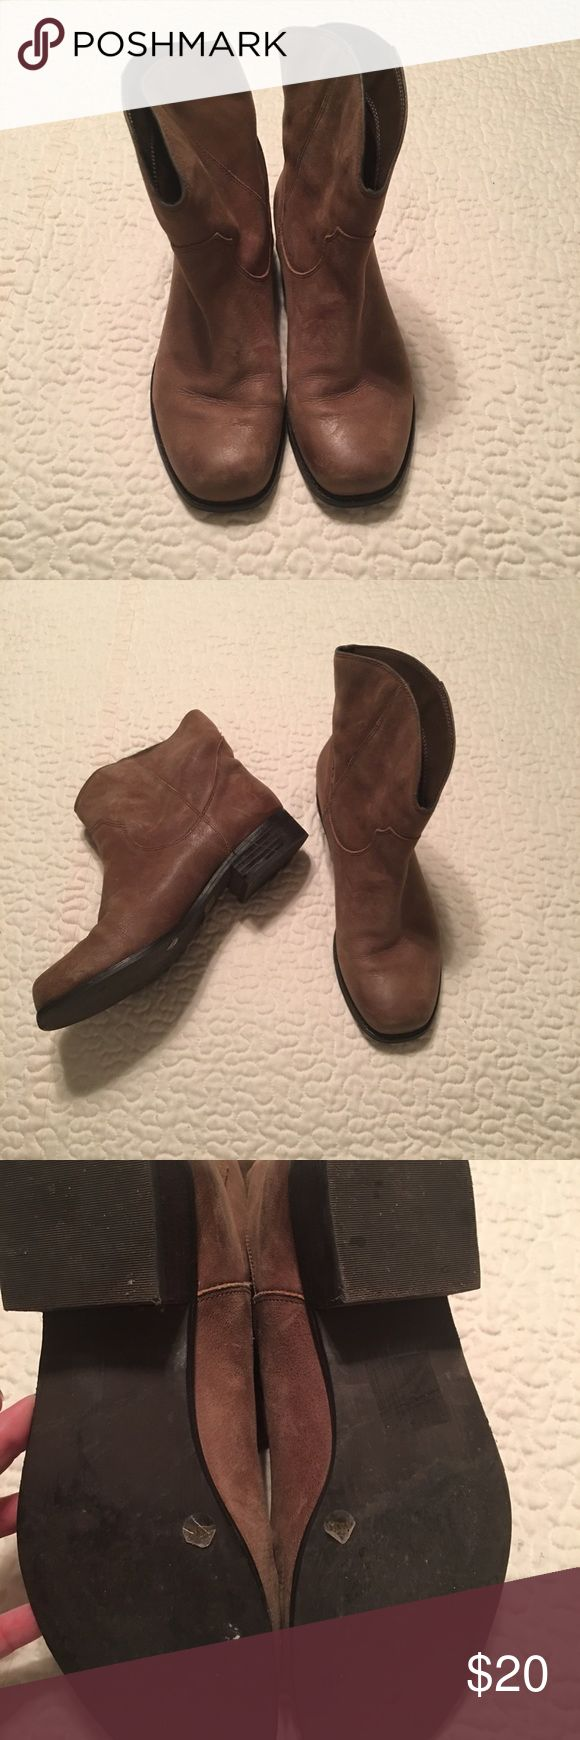 Jessica Simpson boots Great boot to wear with leggings, skirts, dress, shorts! Worn for sure plenty of times but plenty of life in them. Jessica Simpson Shoes Ankle Boots & Booties